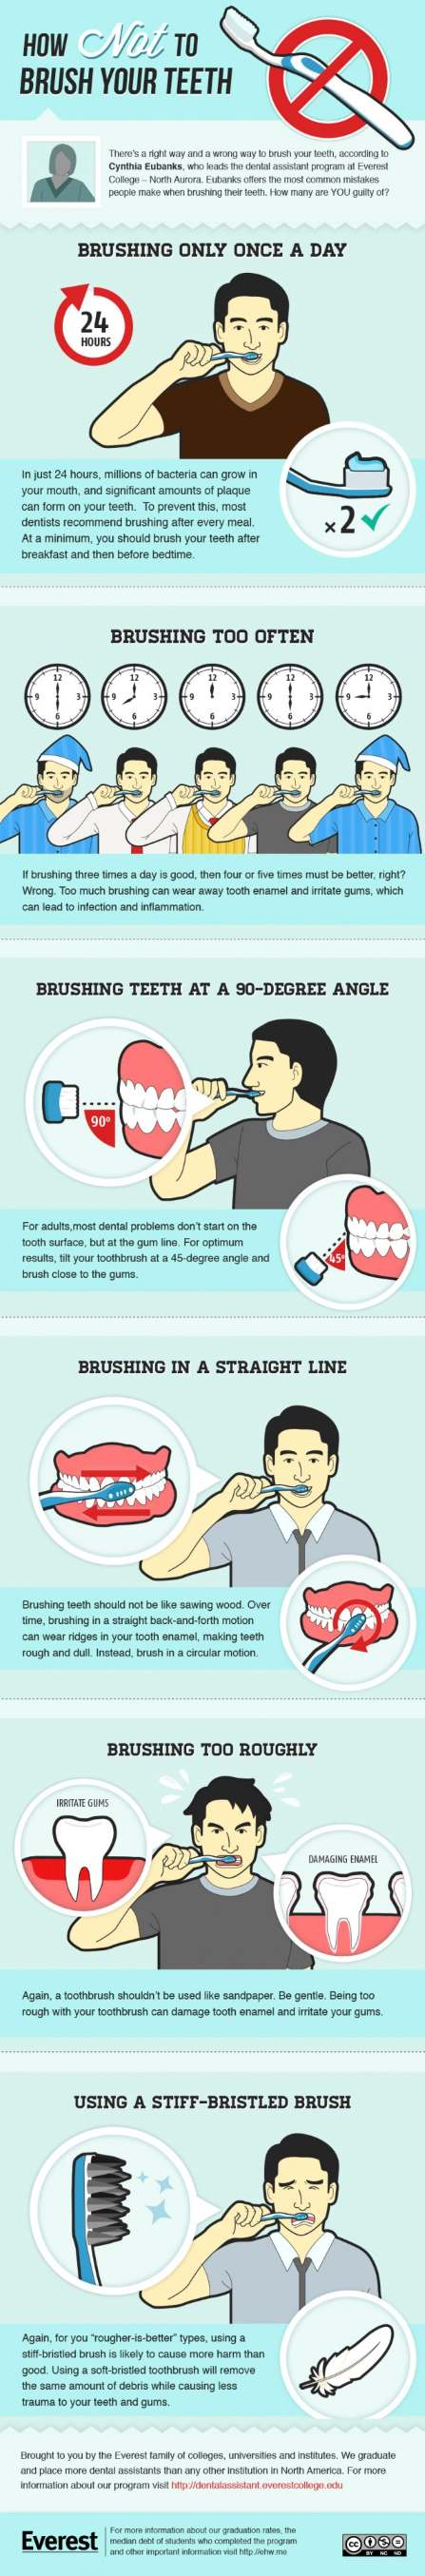 Brush teeth mistakes